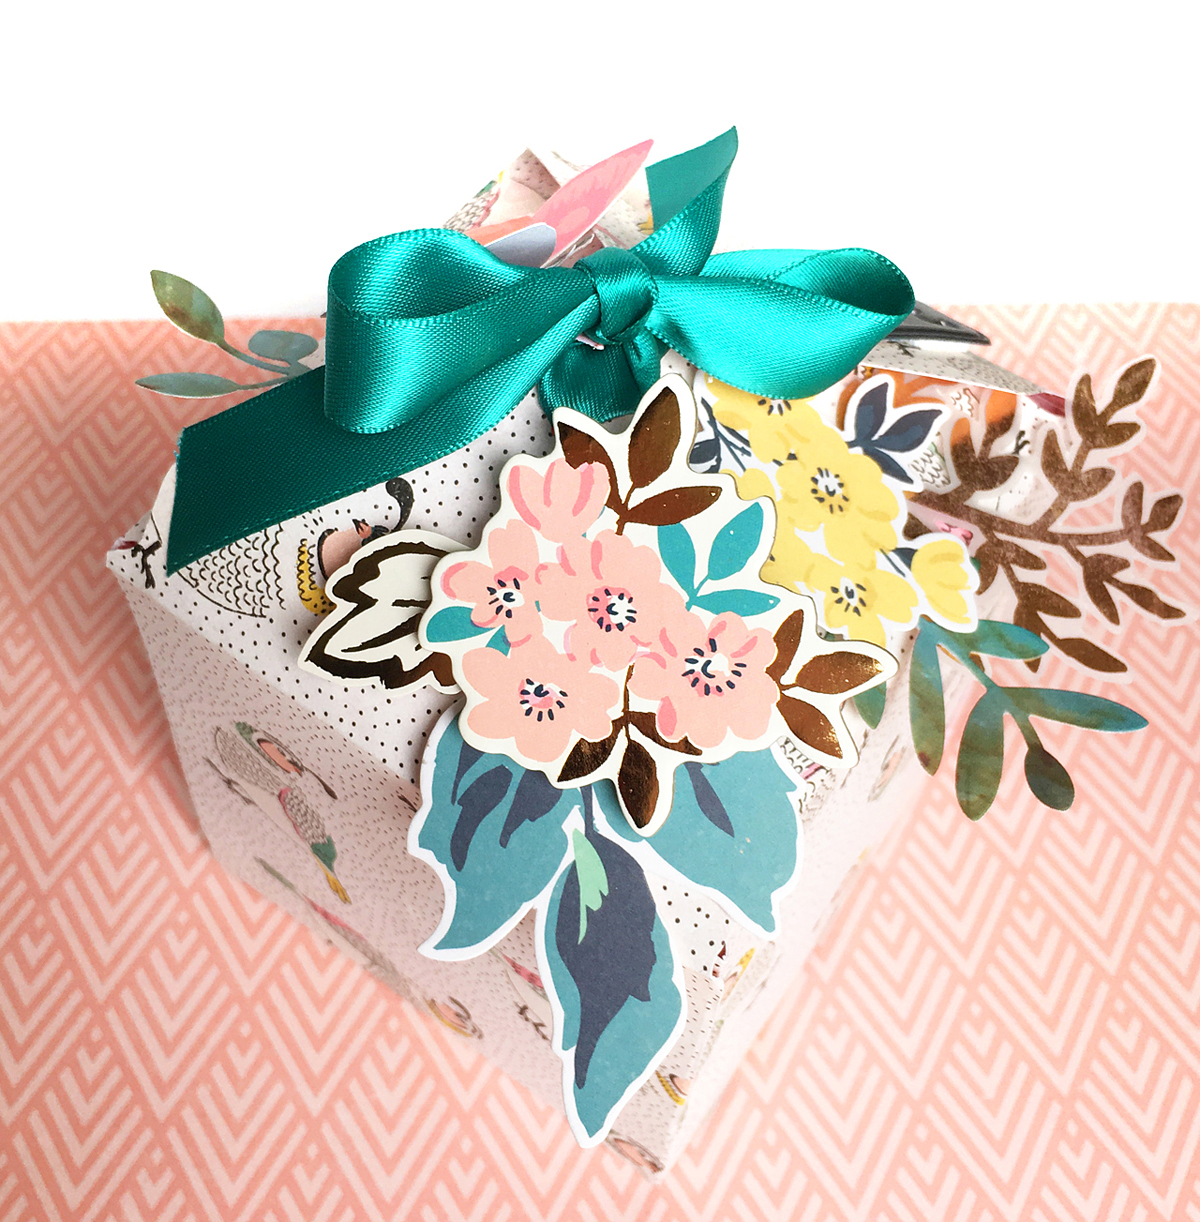 123 Punch Board Gift Box by Enza Gudor for We R Memory Keepers